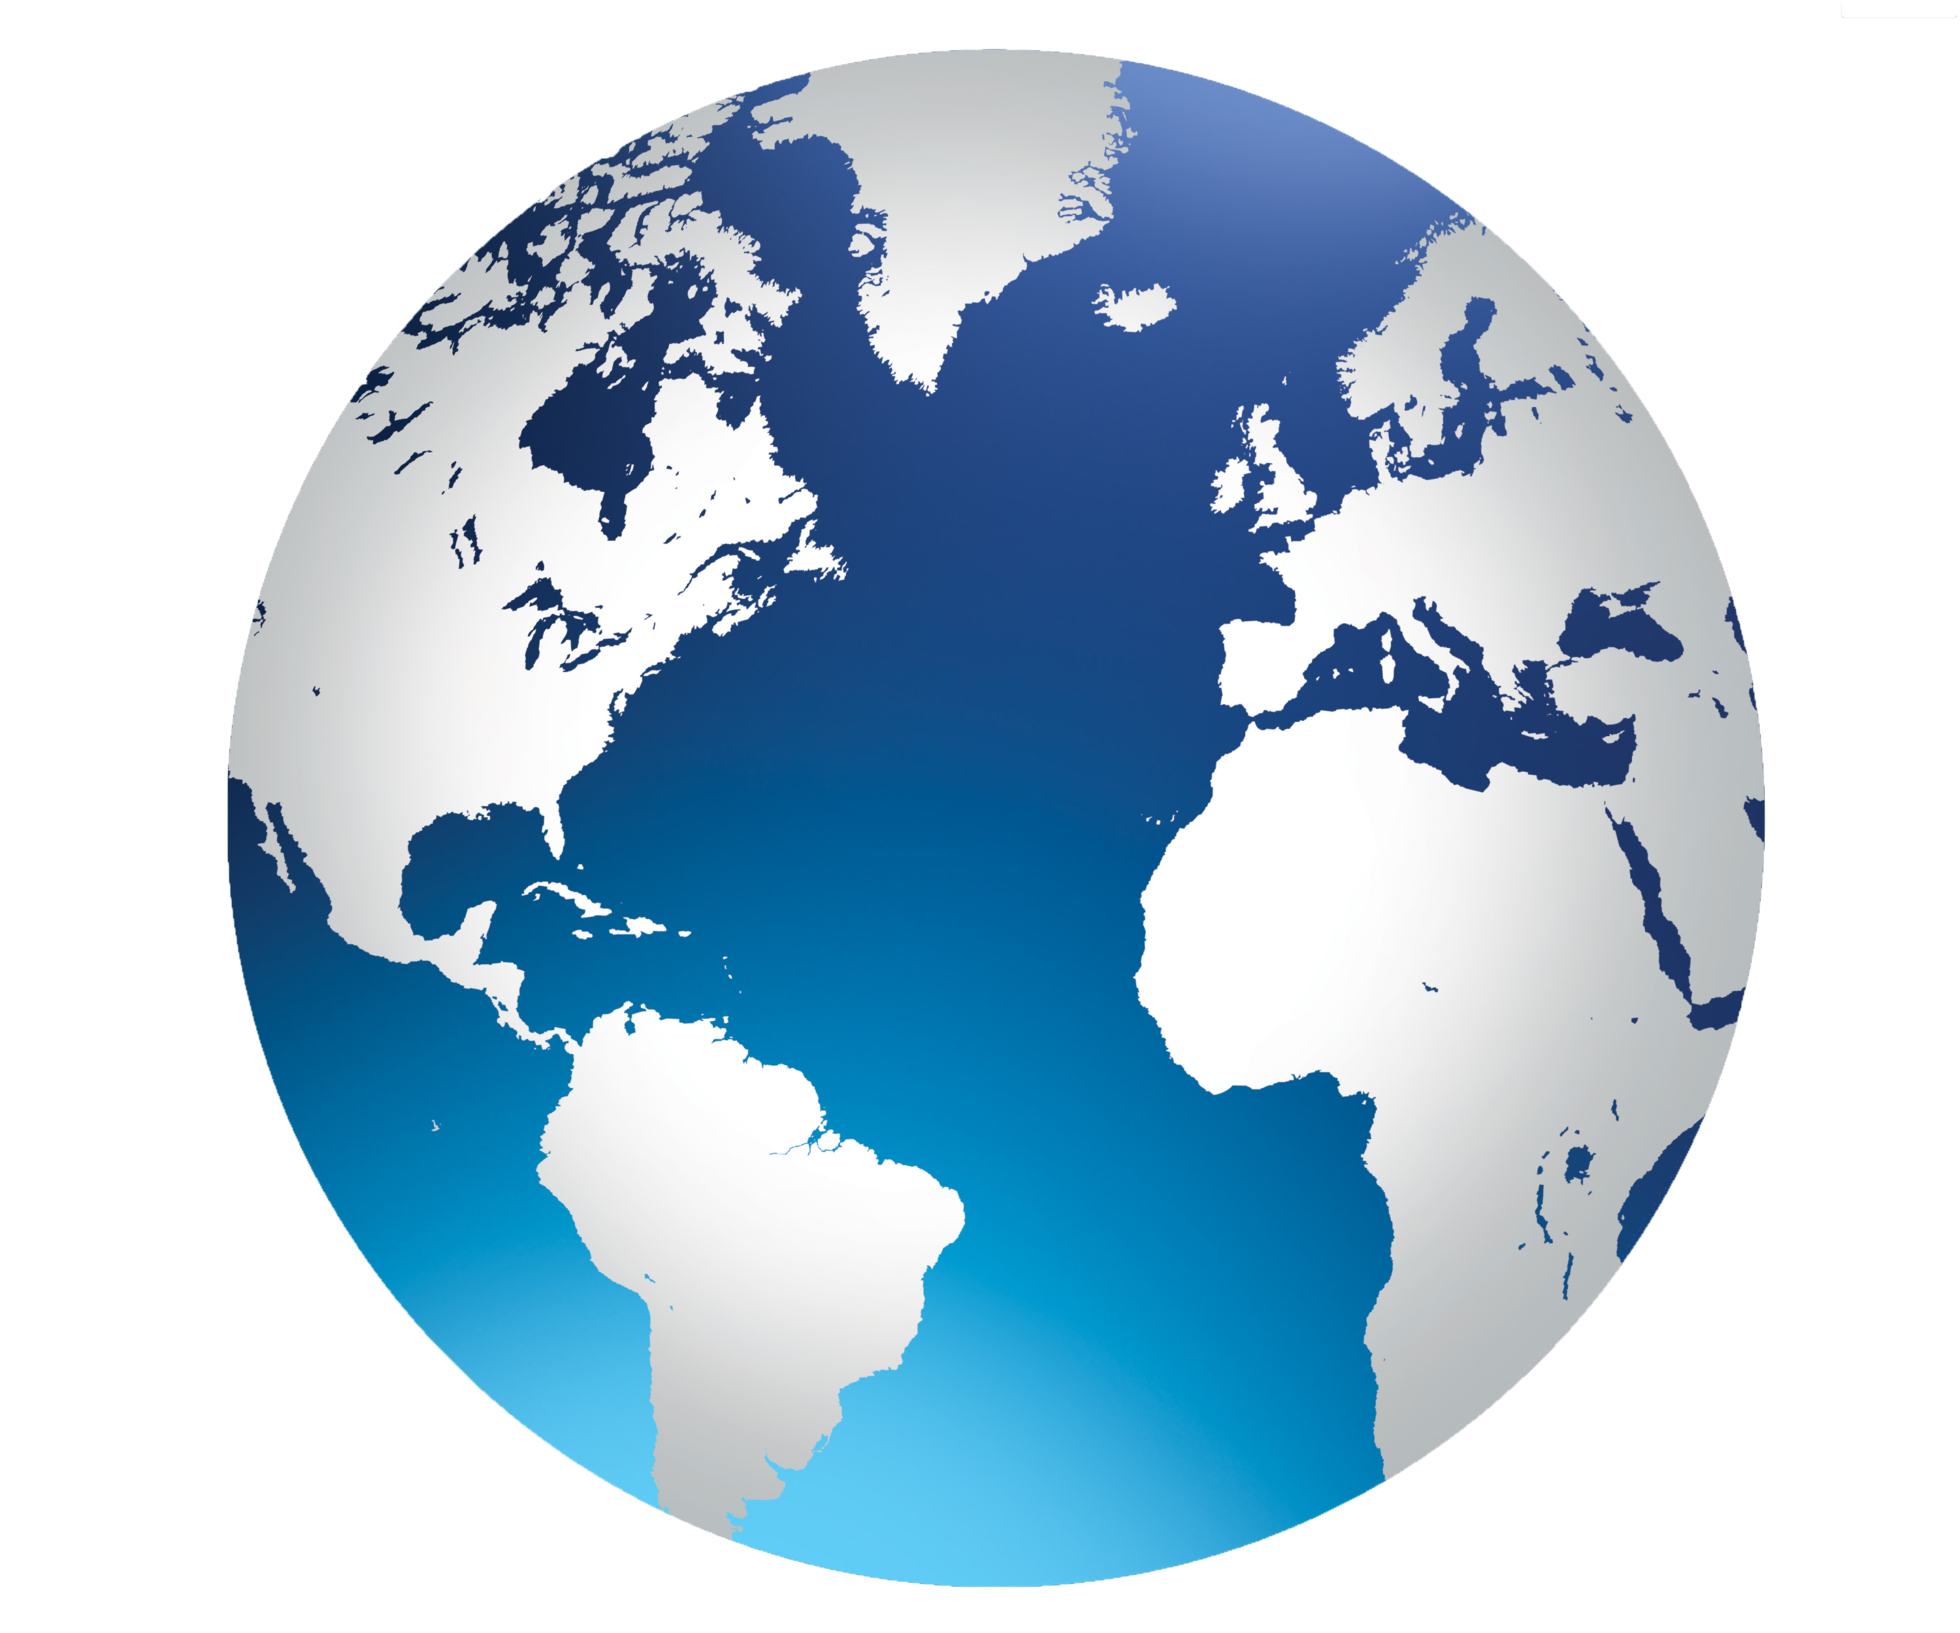 Hd png image of. Clipart world globe north america